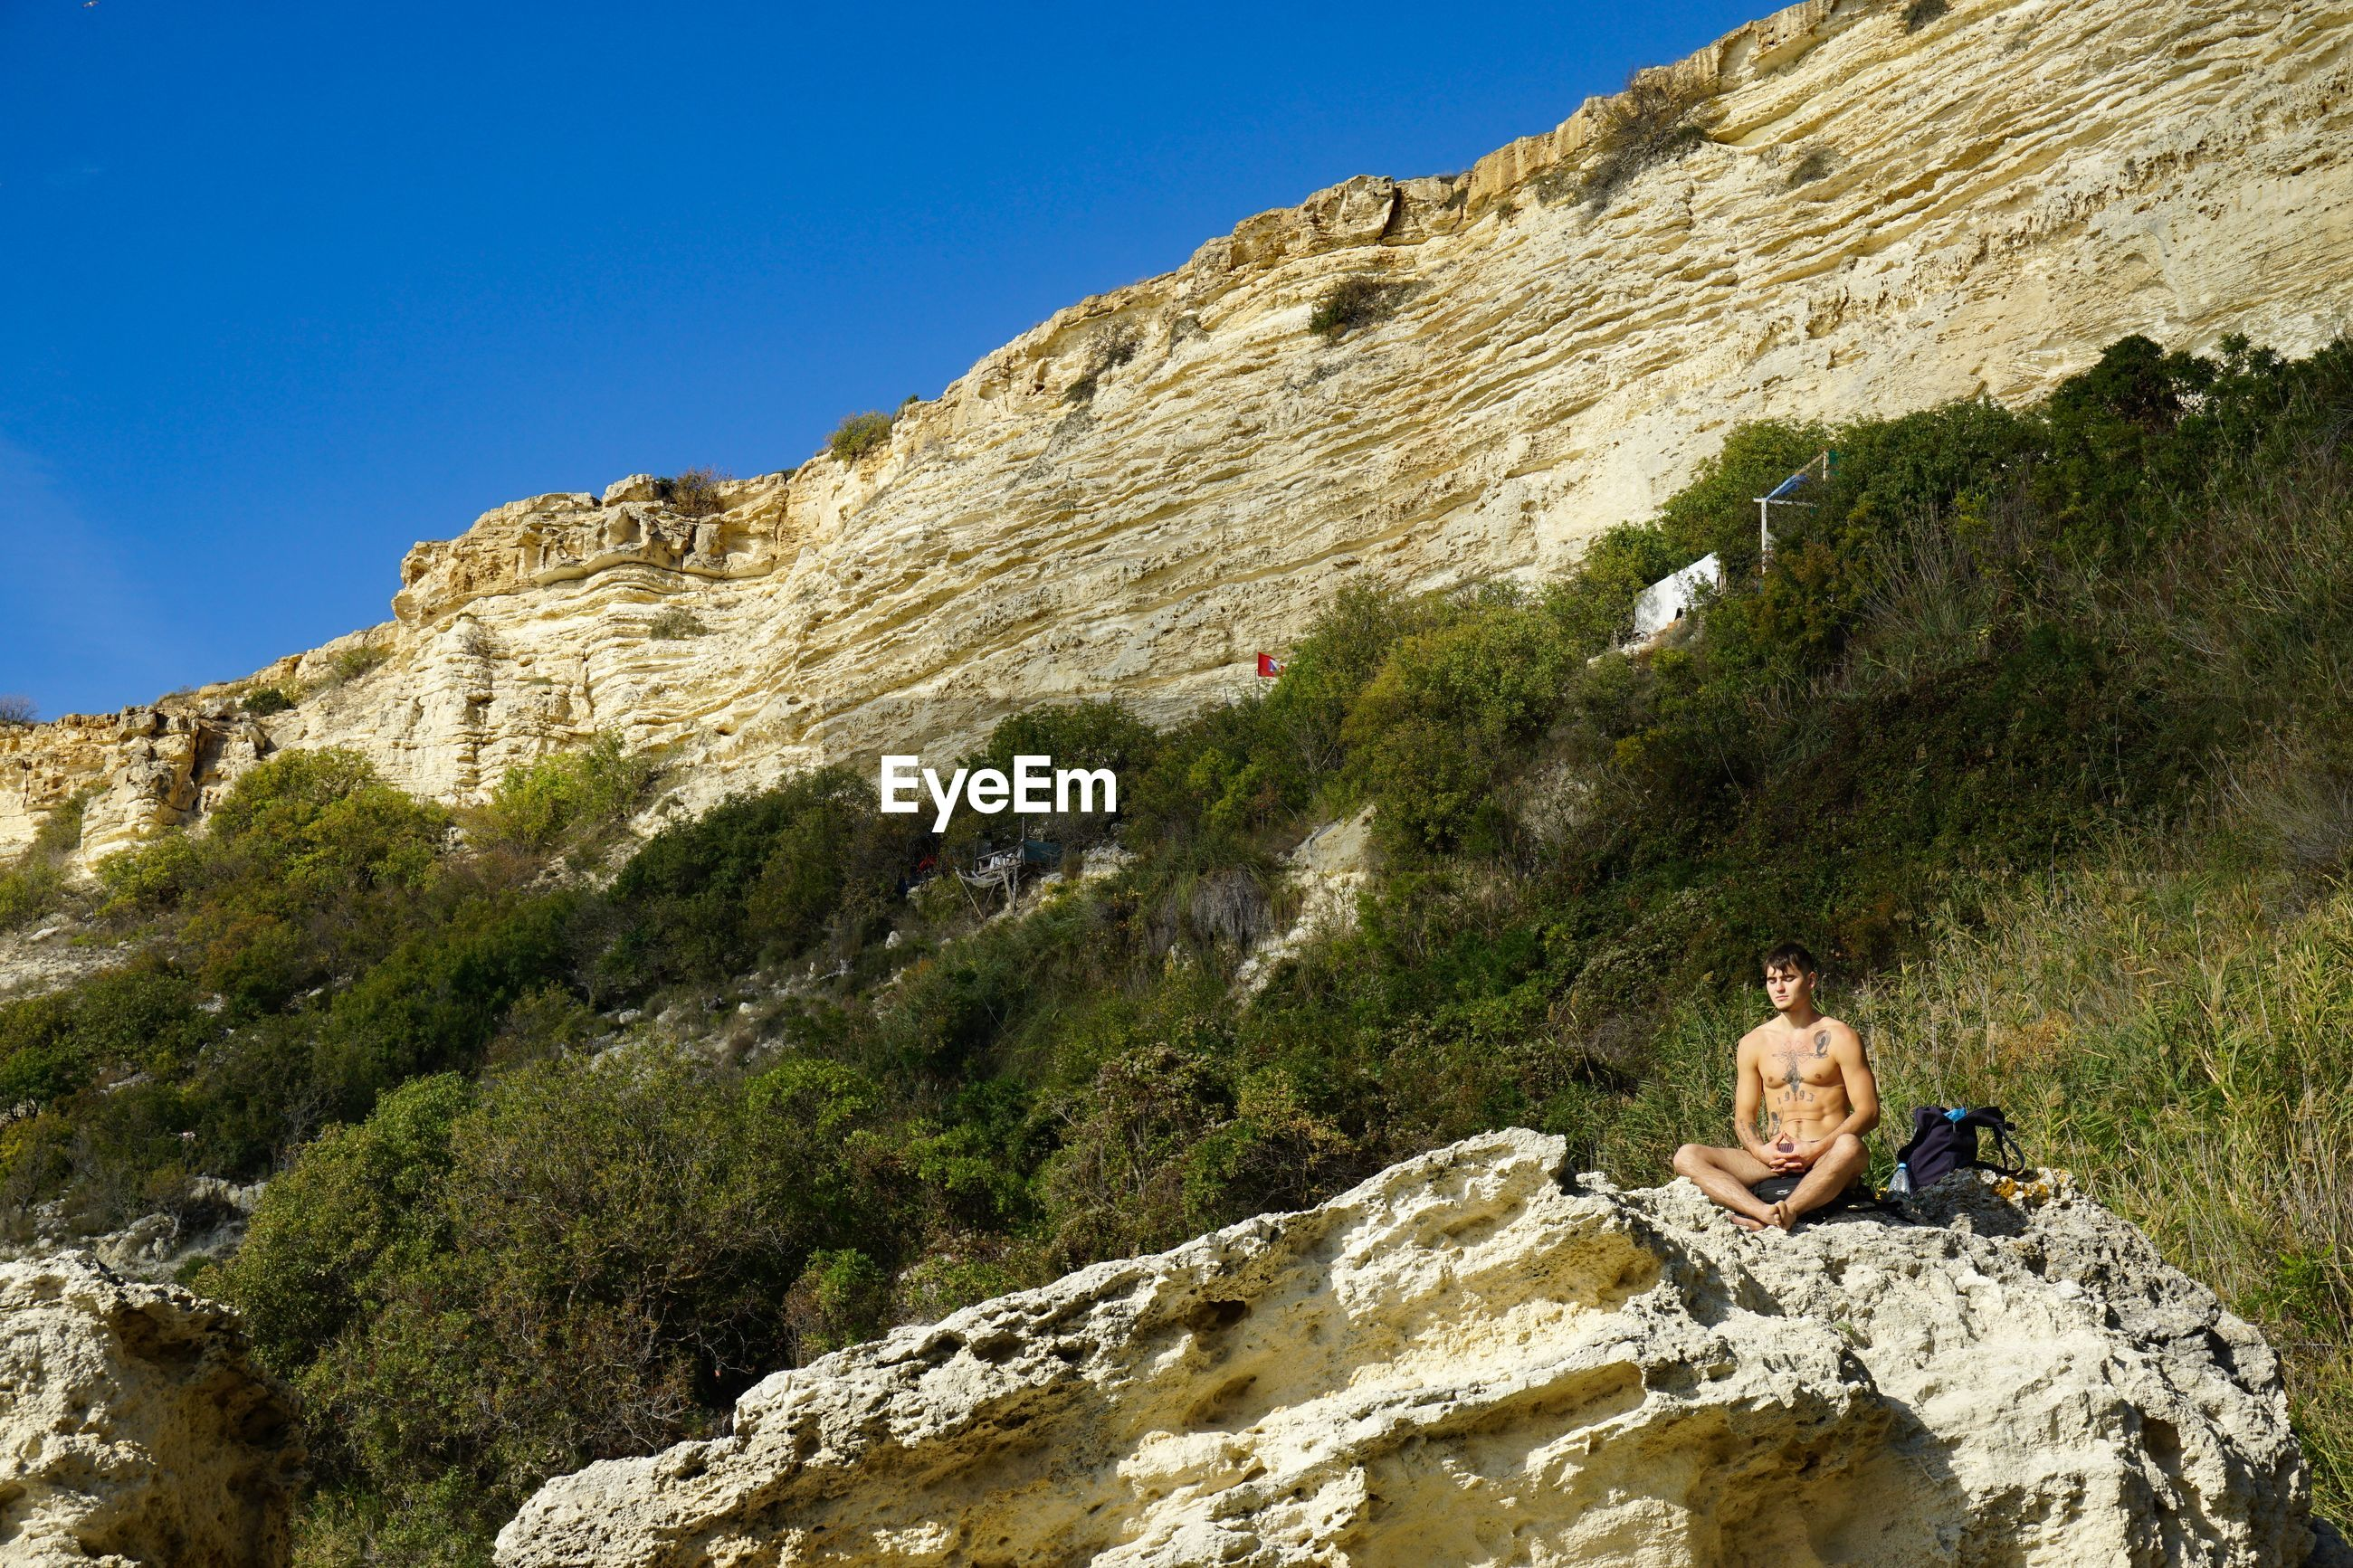 WOMAN SITTING ON ROCK BY MOUNTAIN AGAINST SKY